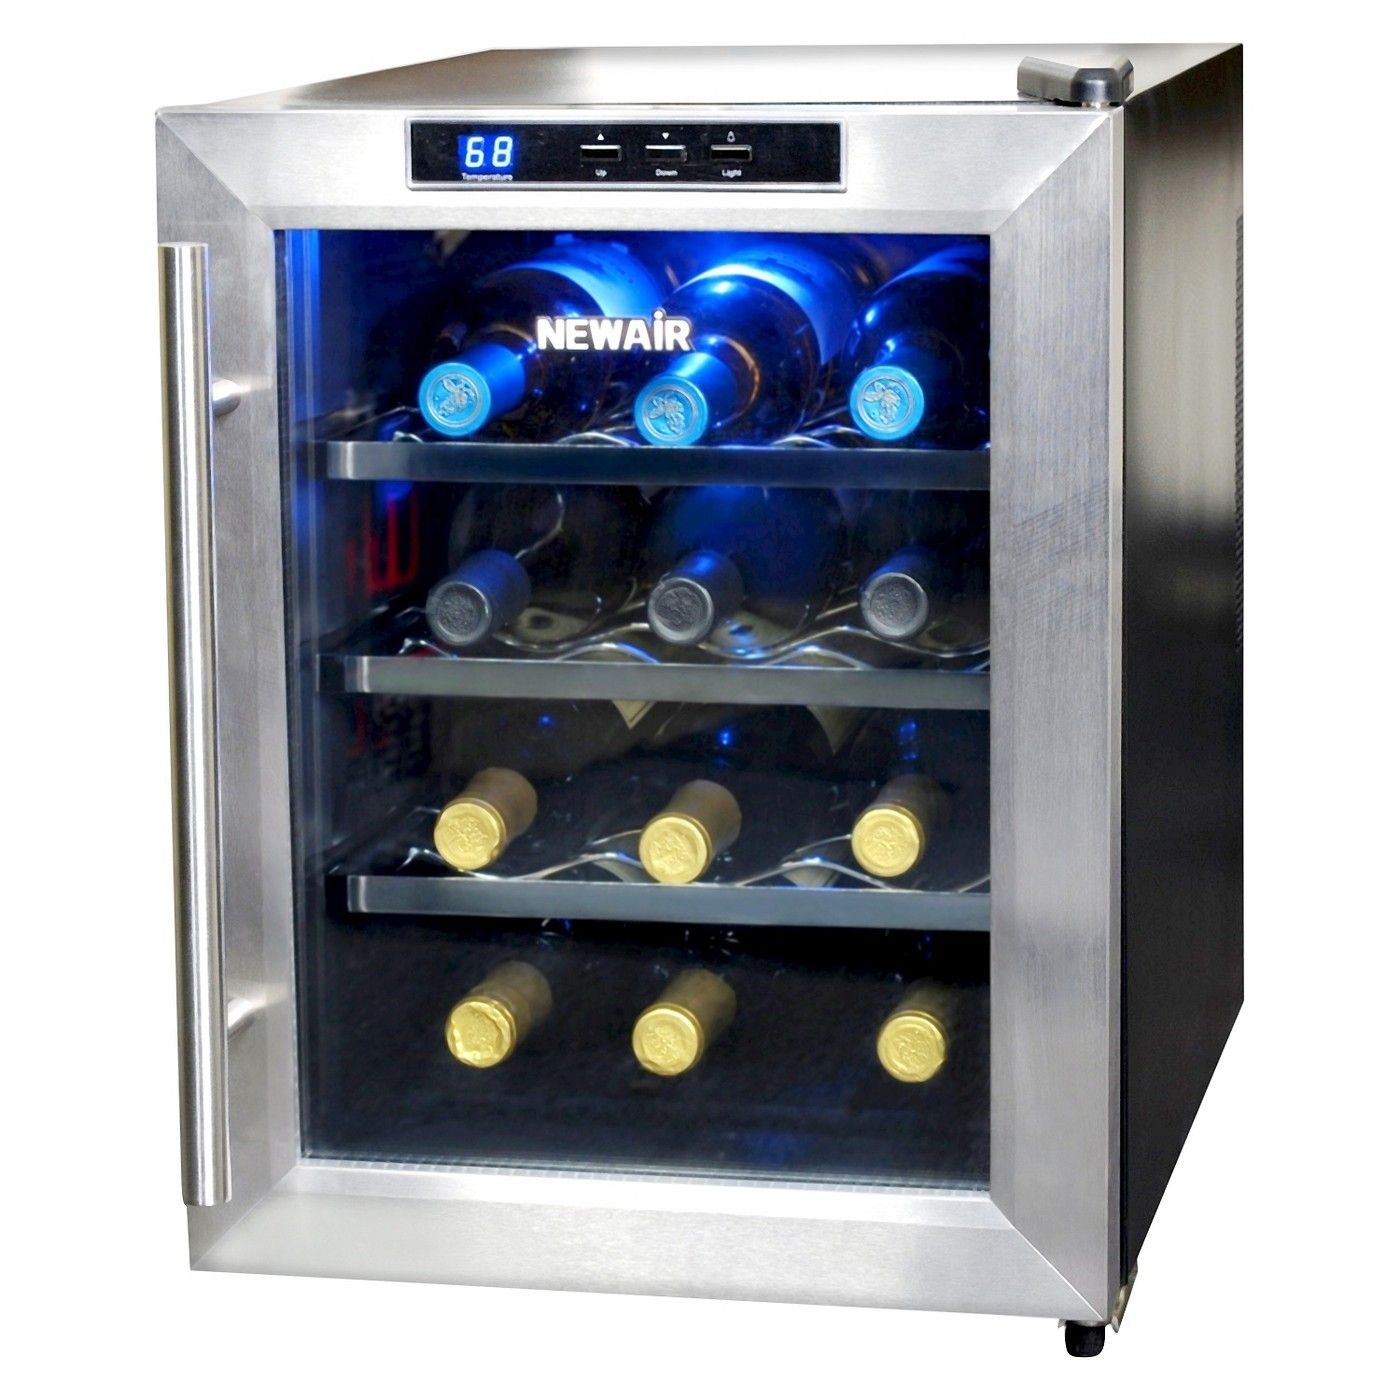 Newair 12 Bottle Countertop Thermoelectric Wine Cooler Stainless Steel Aw 121e Thermoelectric Wine Cooler Wine Refrigerator Wine Fridge